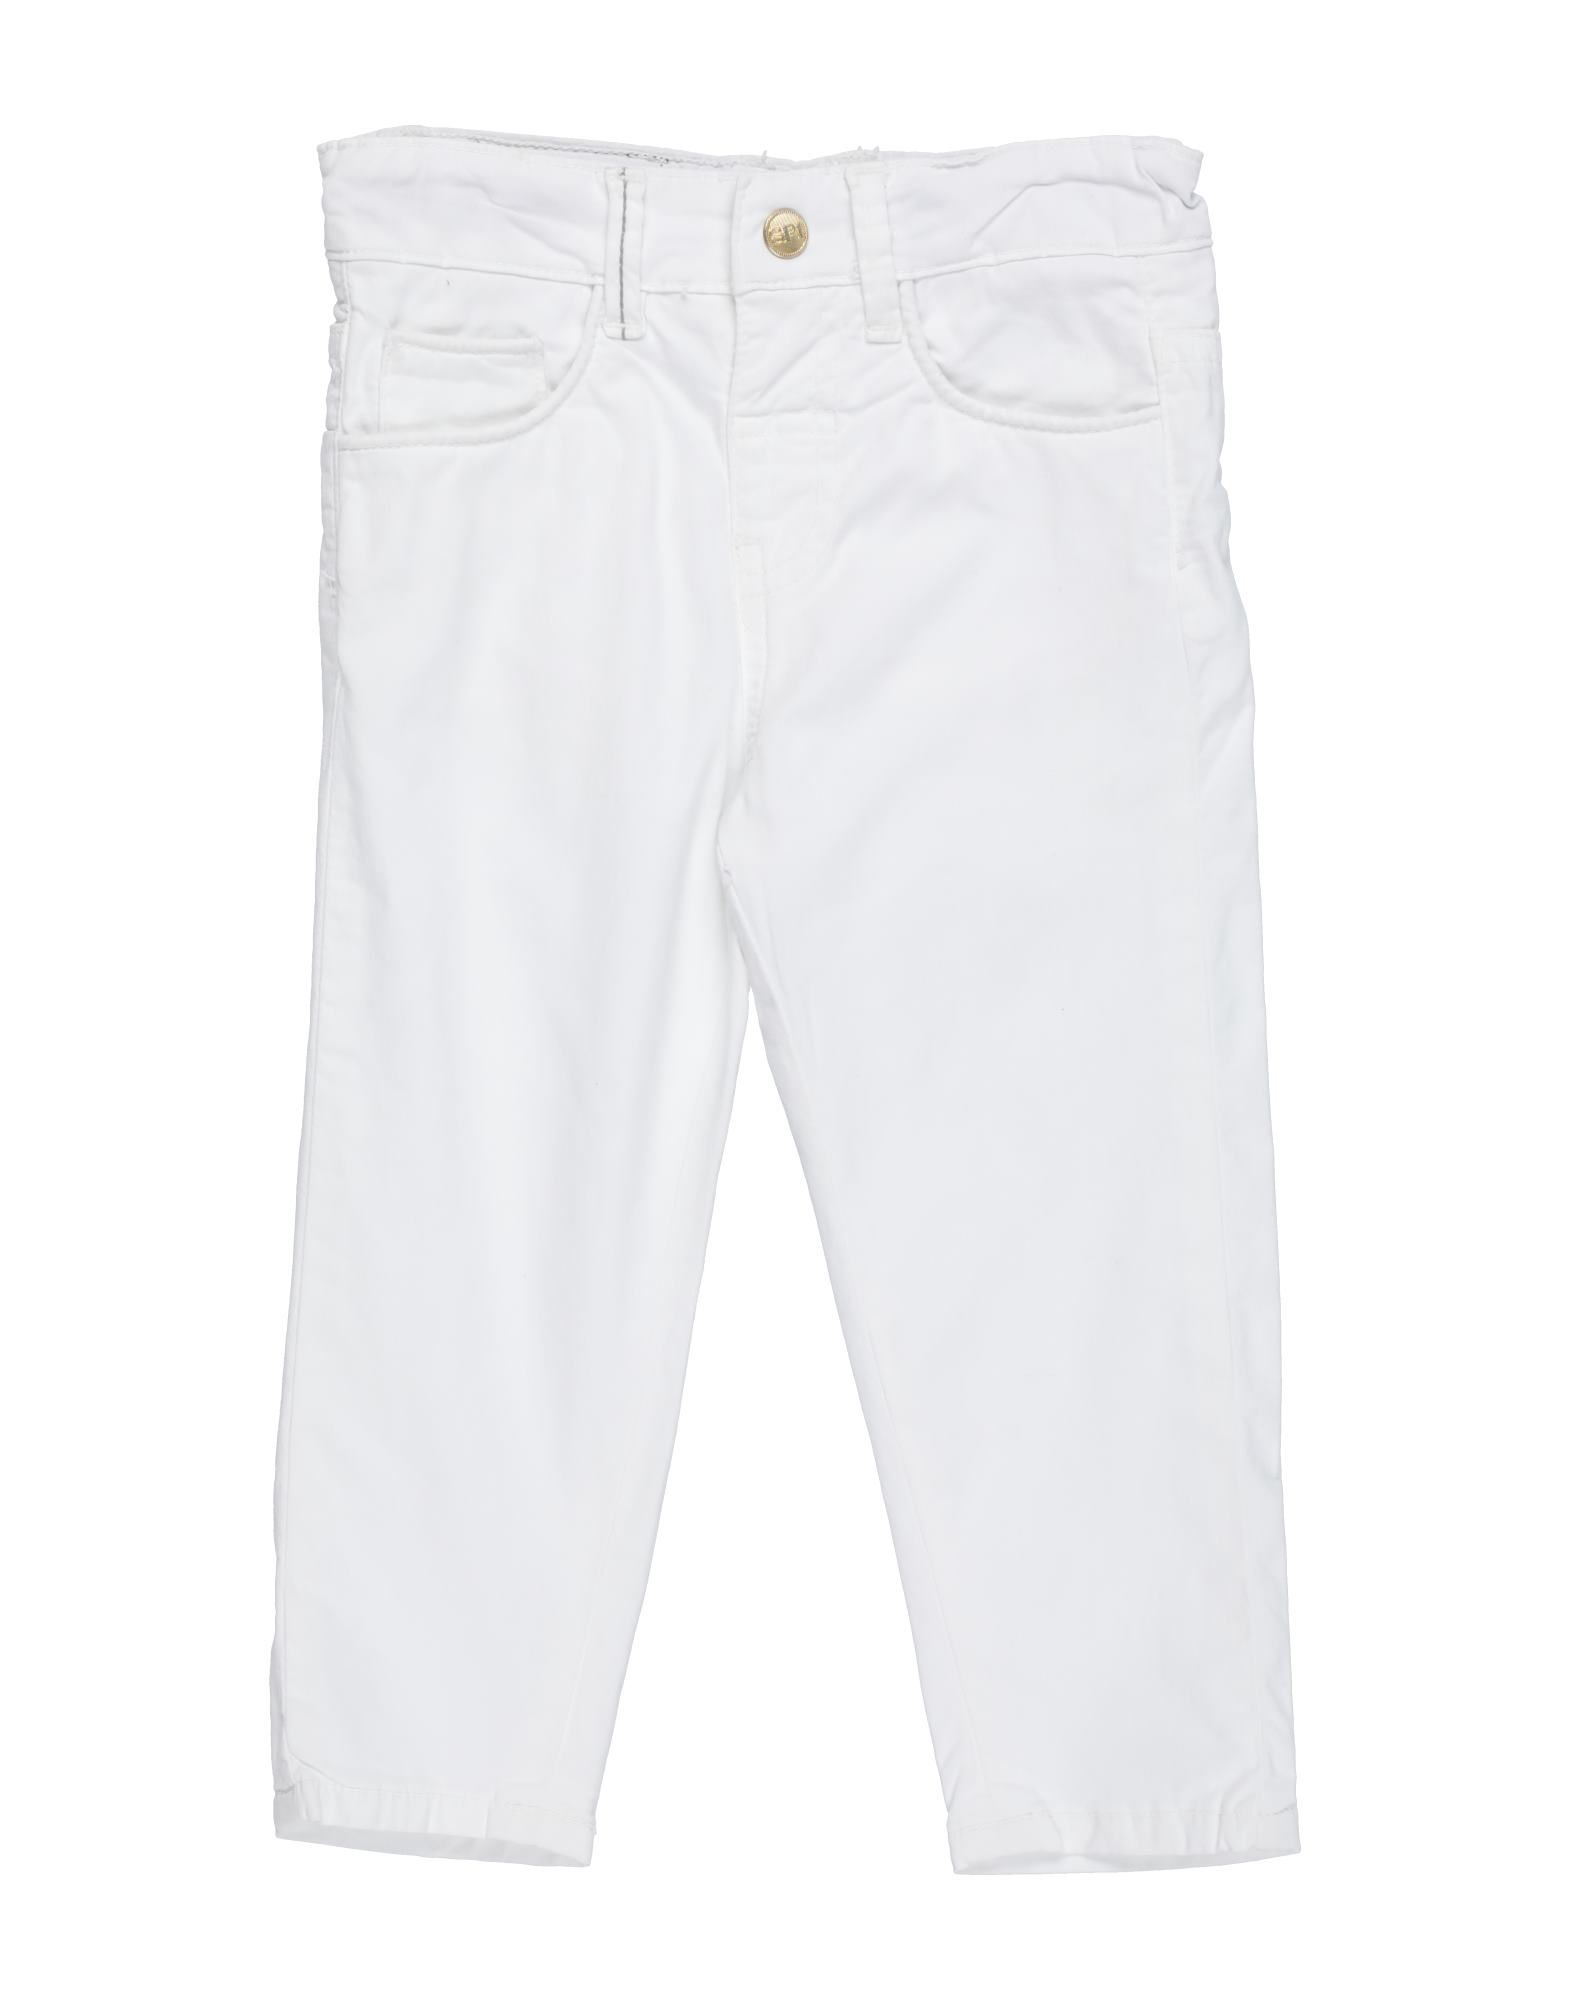 Sp1 Kids' Casual Pants In White